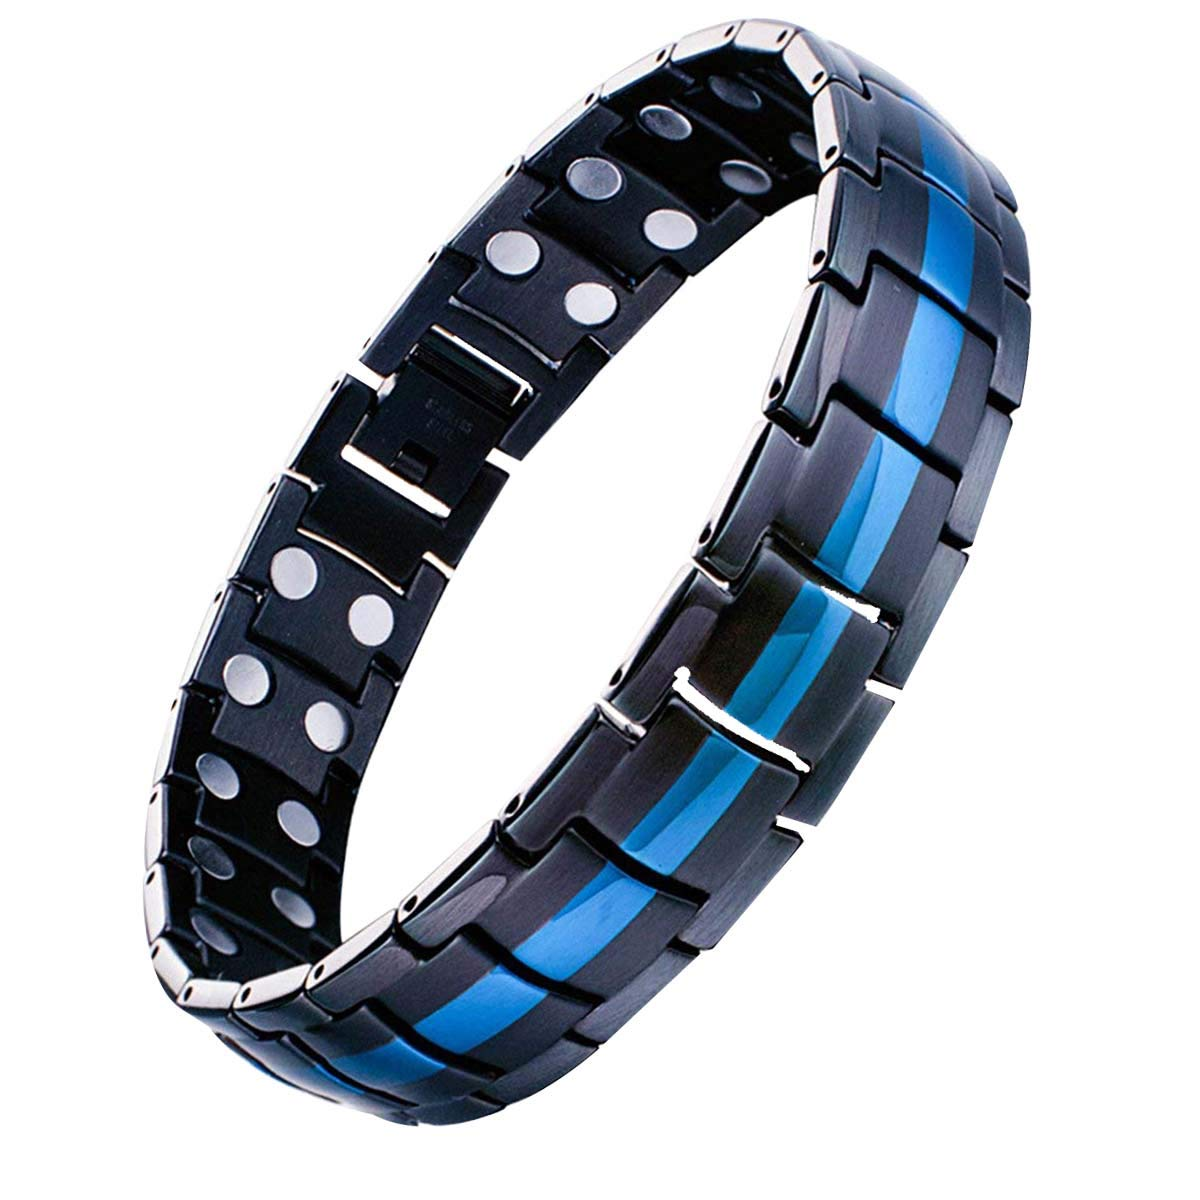 Feraco Mens Titanium Steel Magnetic Therapy Bracelet with Double Strong Magnets for Arthritis Pain Relief, Black&Blue by Feraco